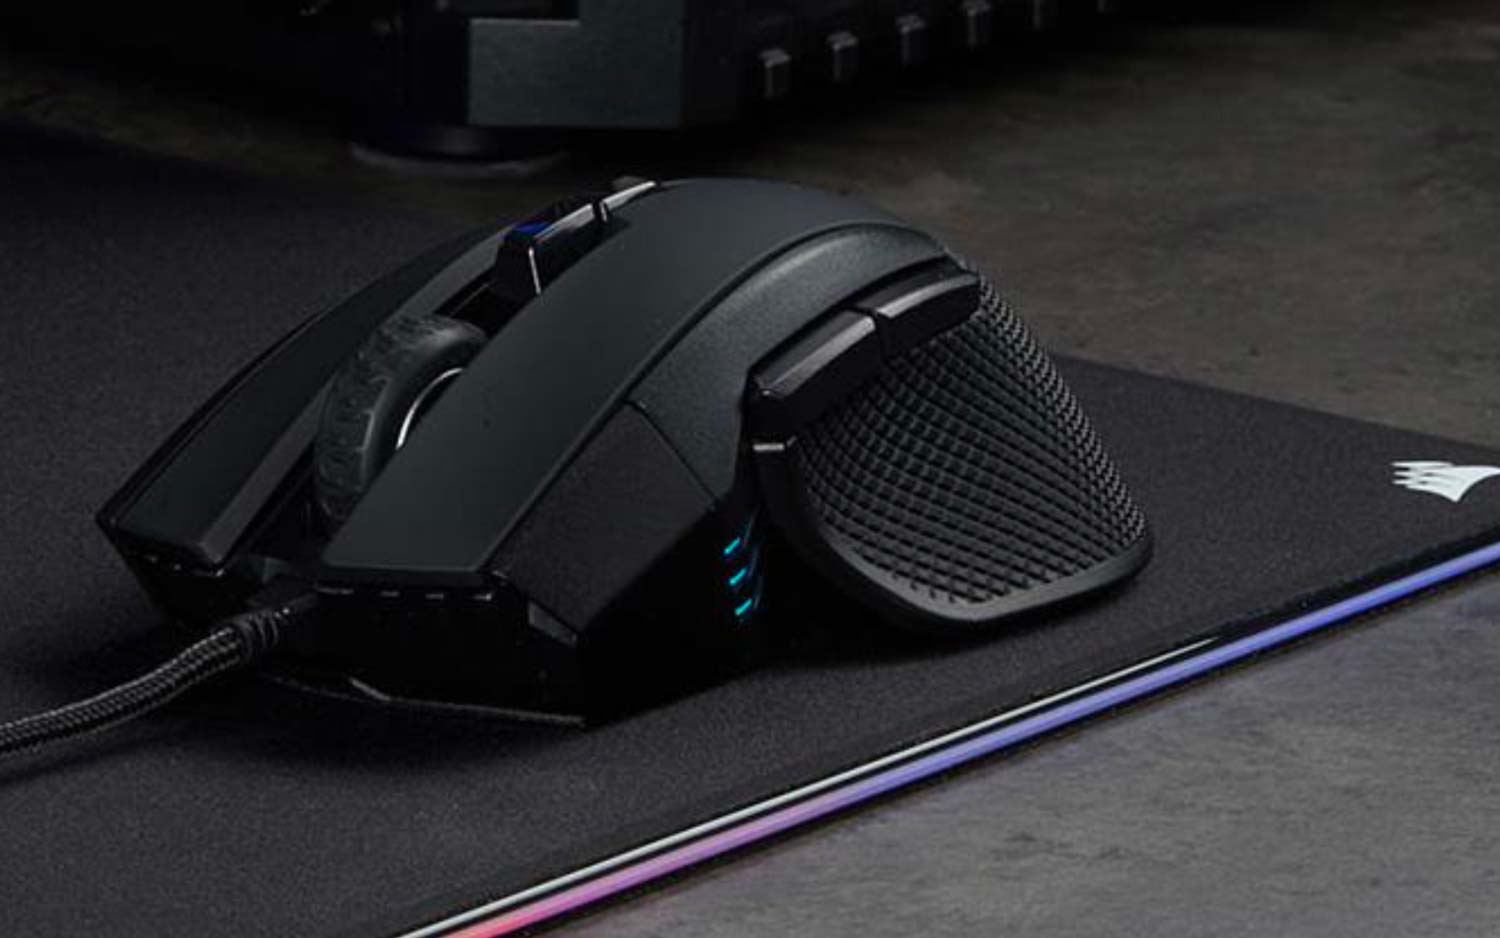 Corsair Ironclaw RGB Review: A Big Mouse for Big Hands | Tom's Guide